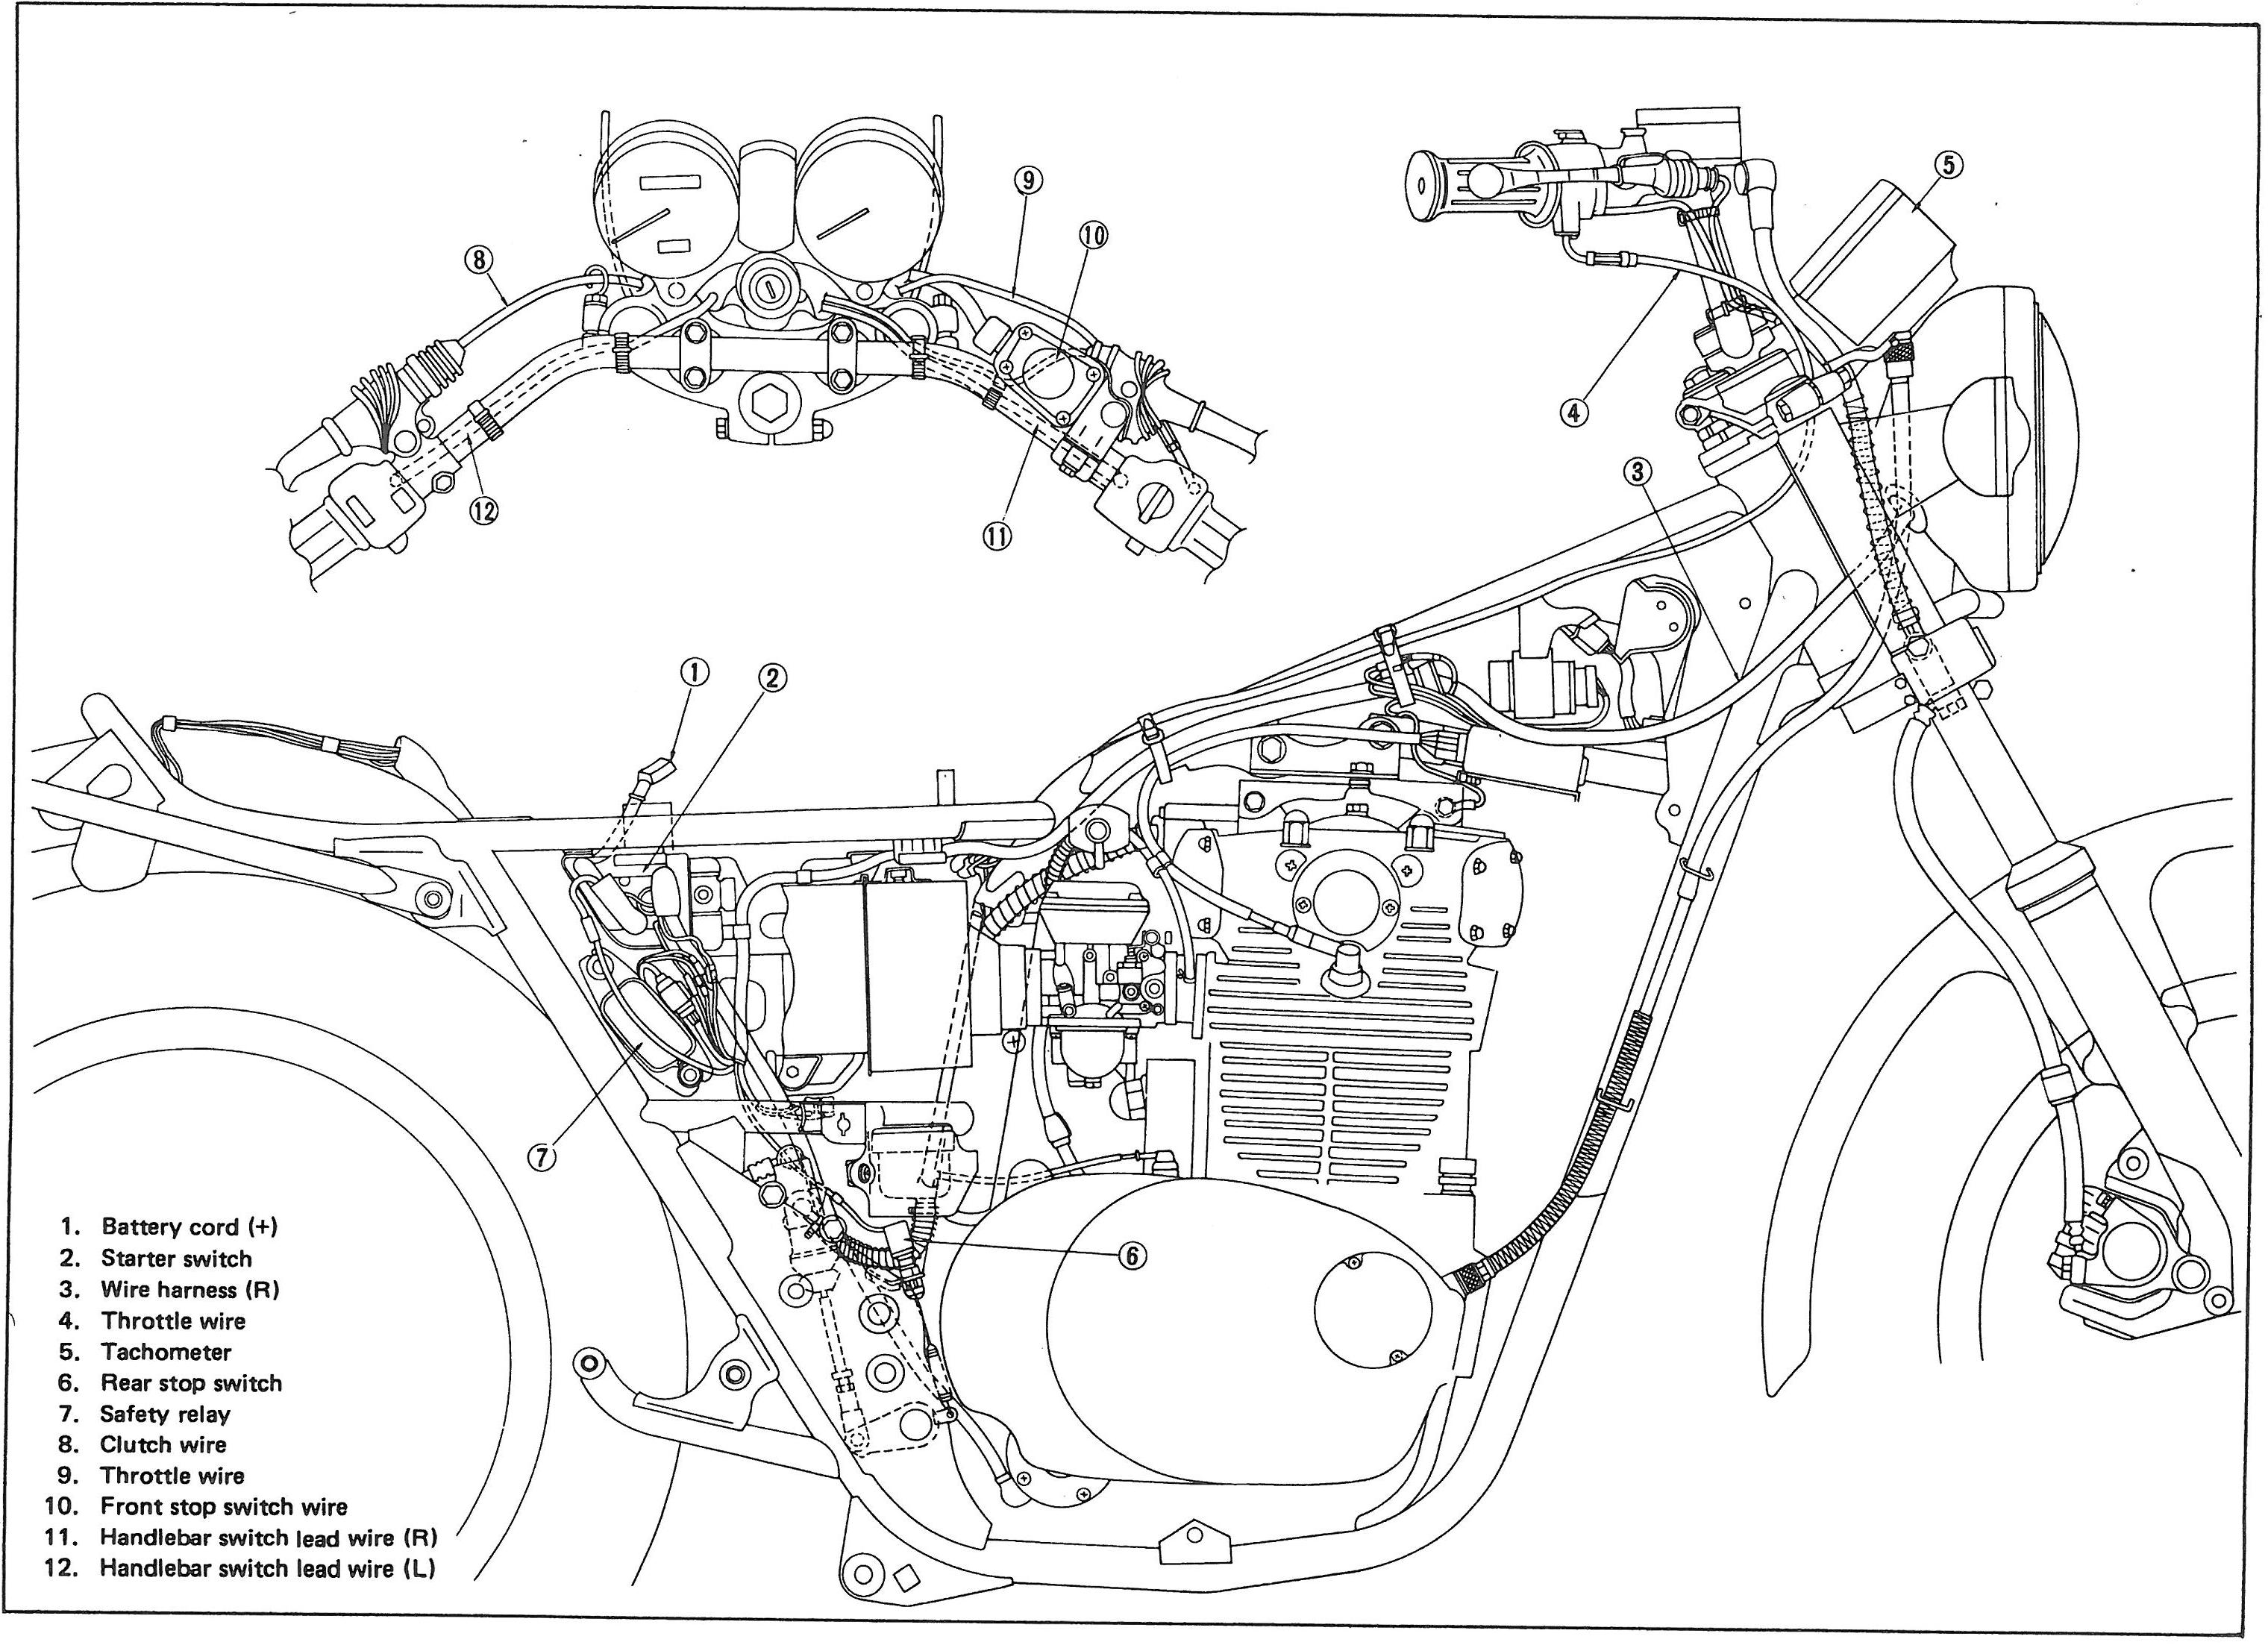 8 Pin Cdi Wiring Diagram on Wiring Diagram For Gy6 Scooter Engine